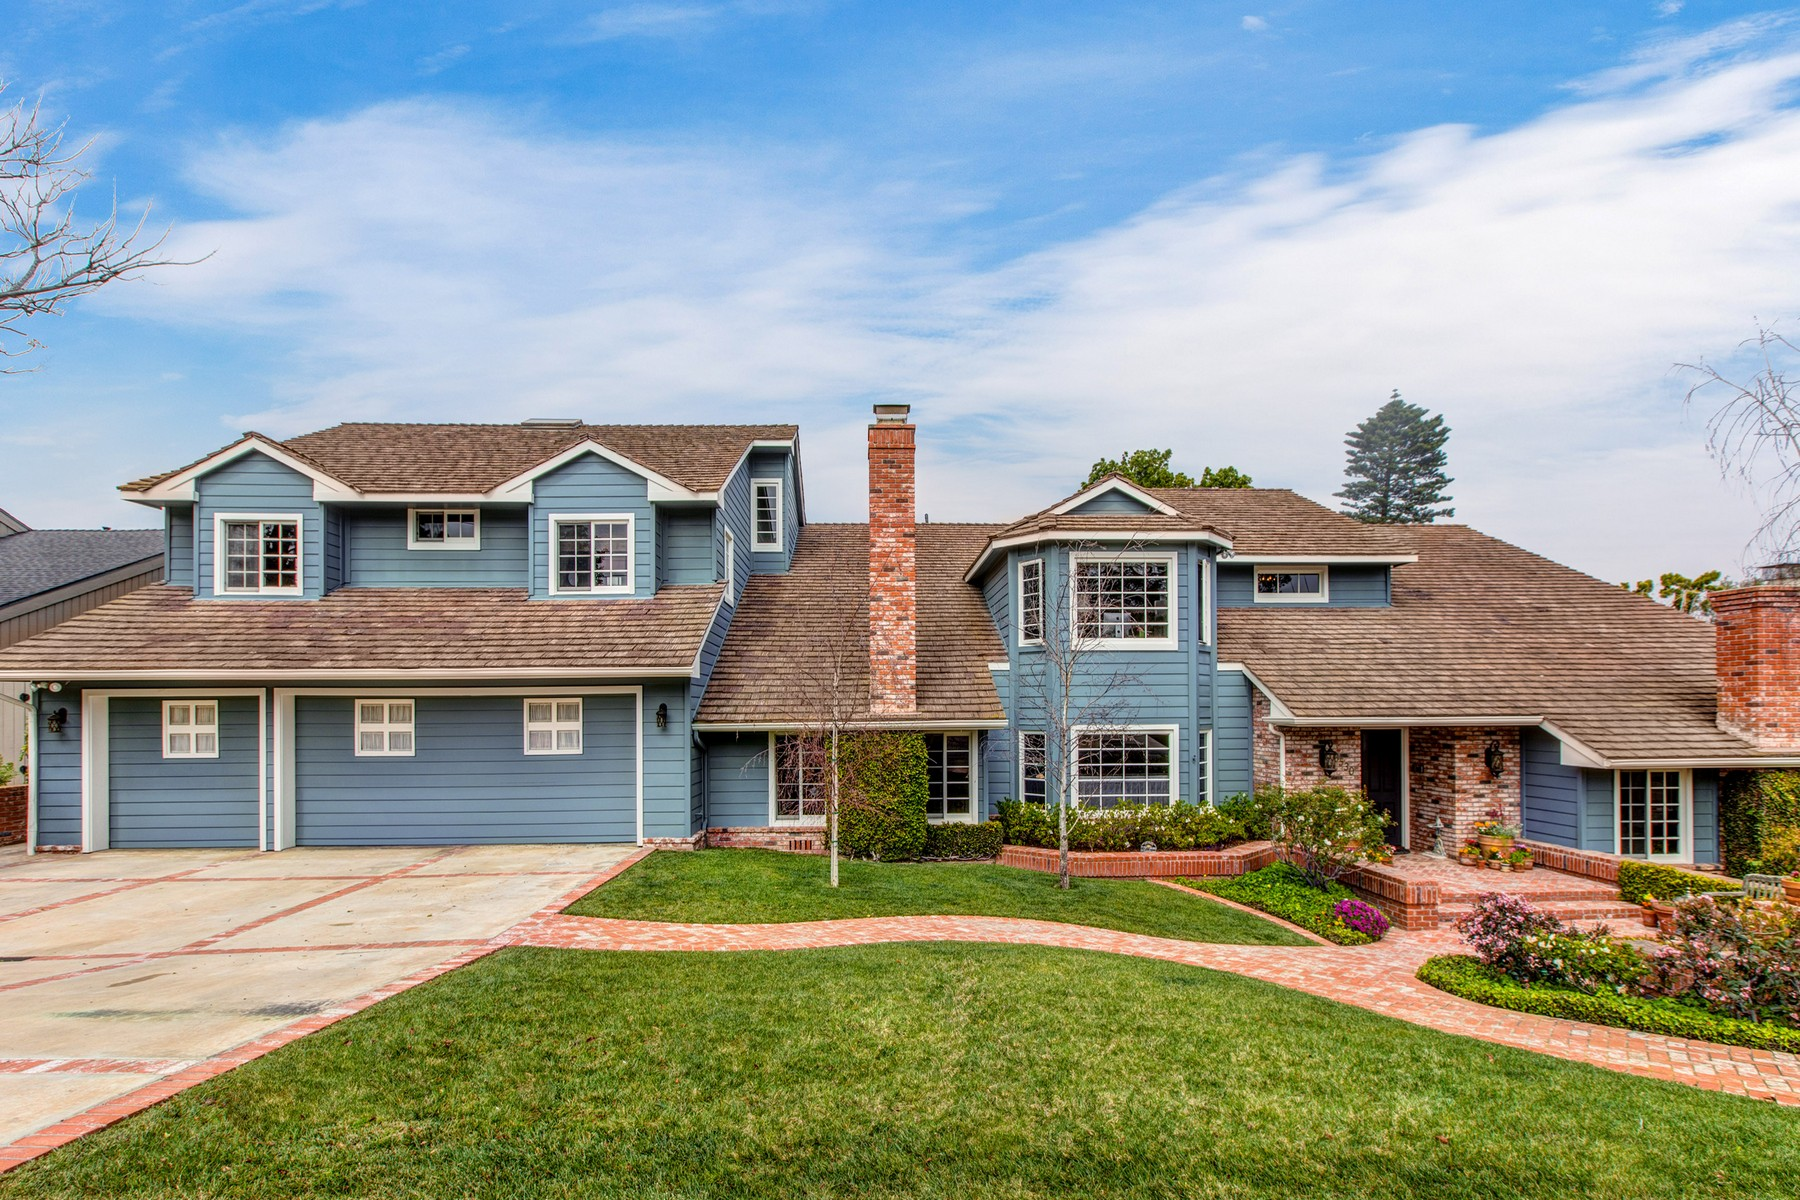 Single Family Home for Sale at 3530 Silvergate Place San Diego, California 92106 United States